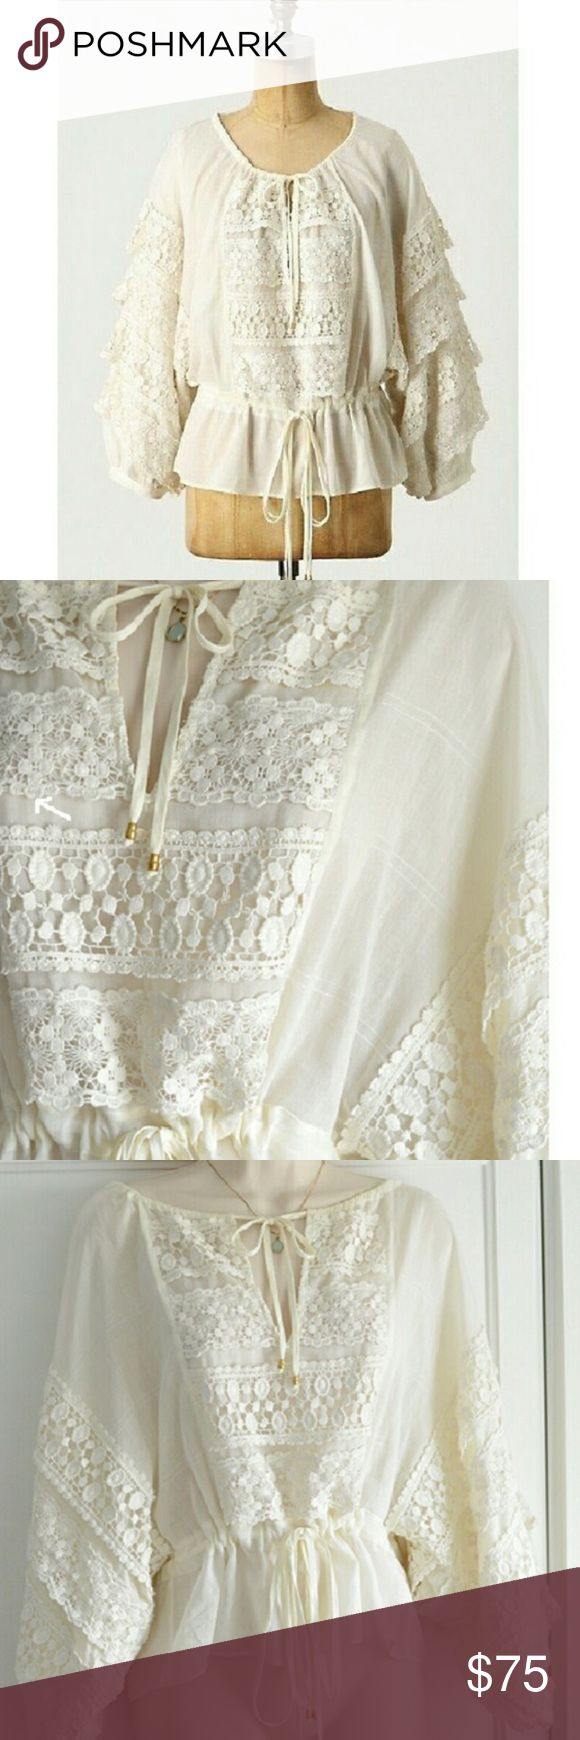 NWT Anthropologie Lace Blouse Brand new with tags, Leifsdottir cream lace blouse. Retails for $258! So gorgeous Anthropologie Tops